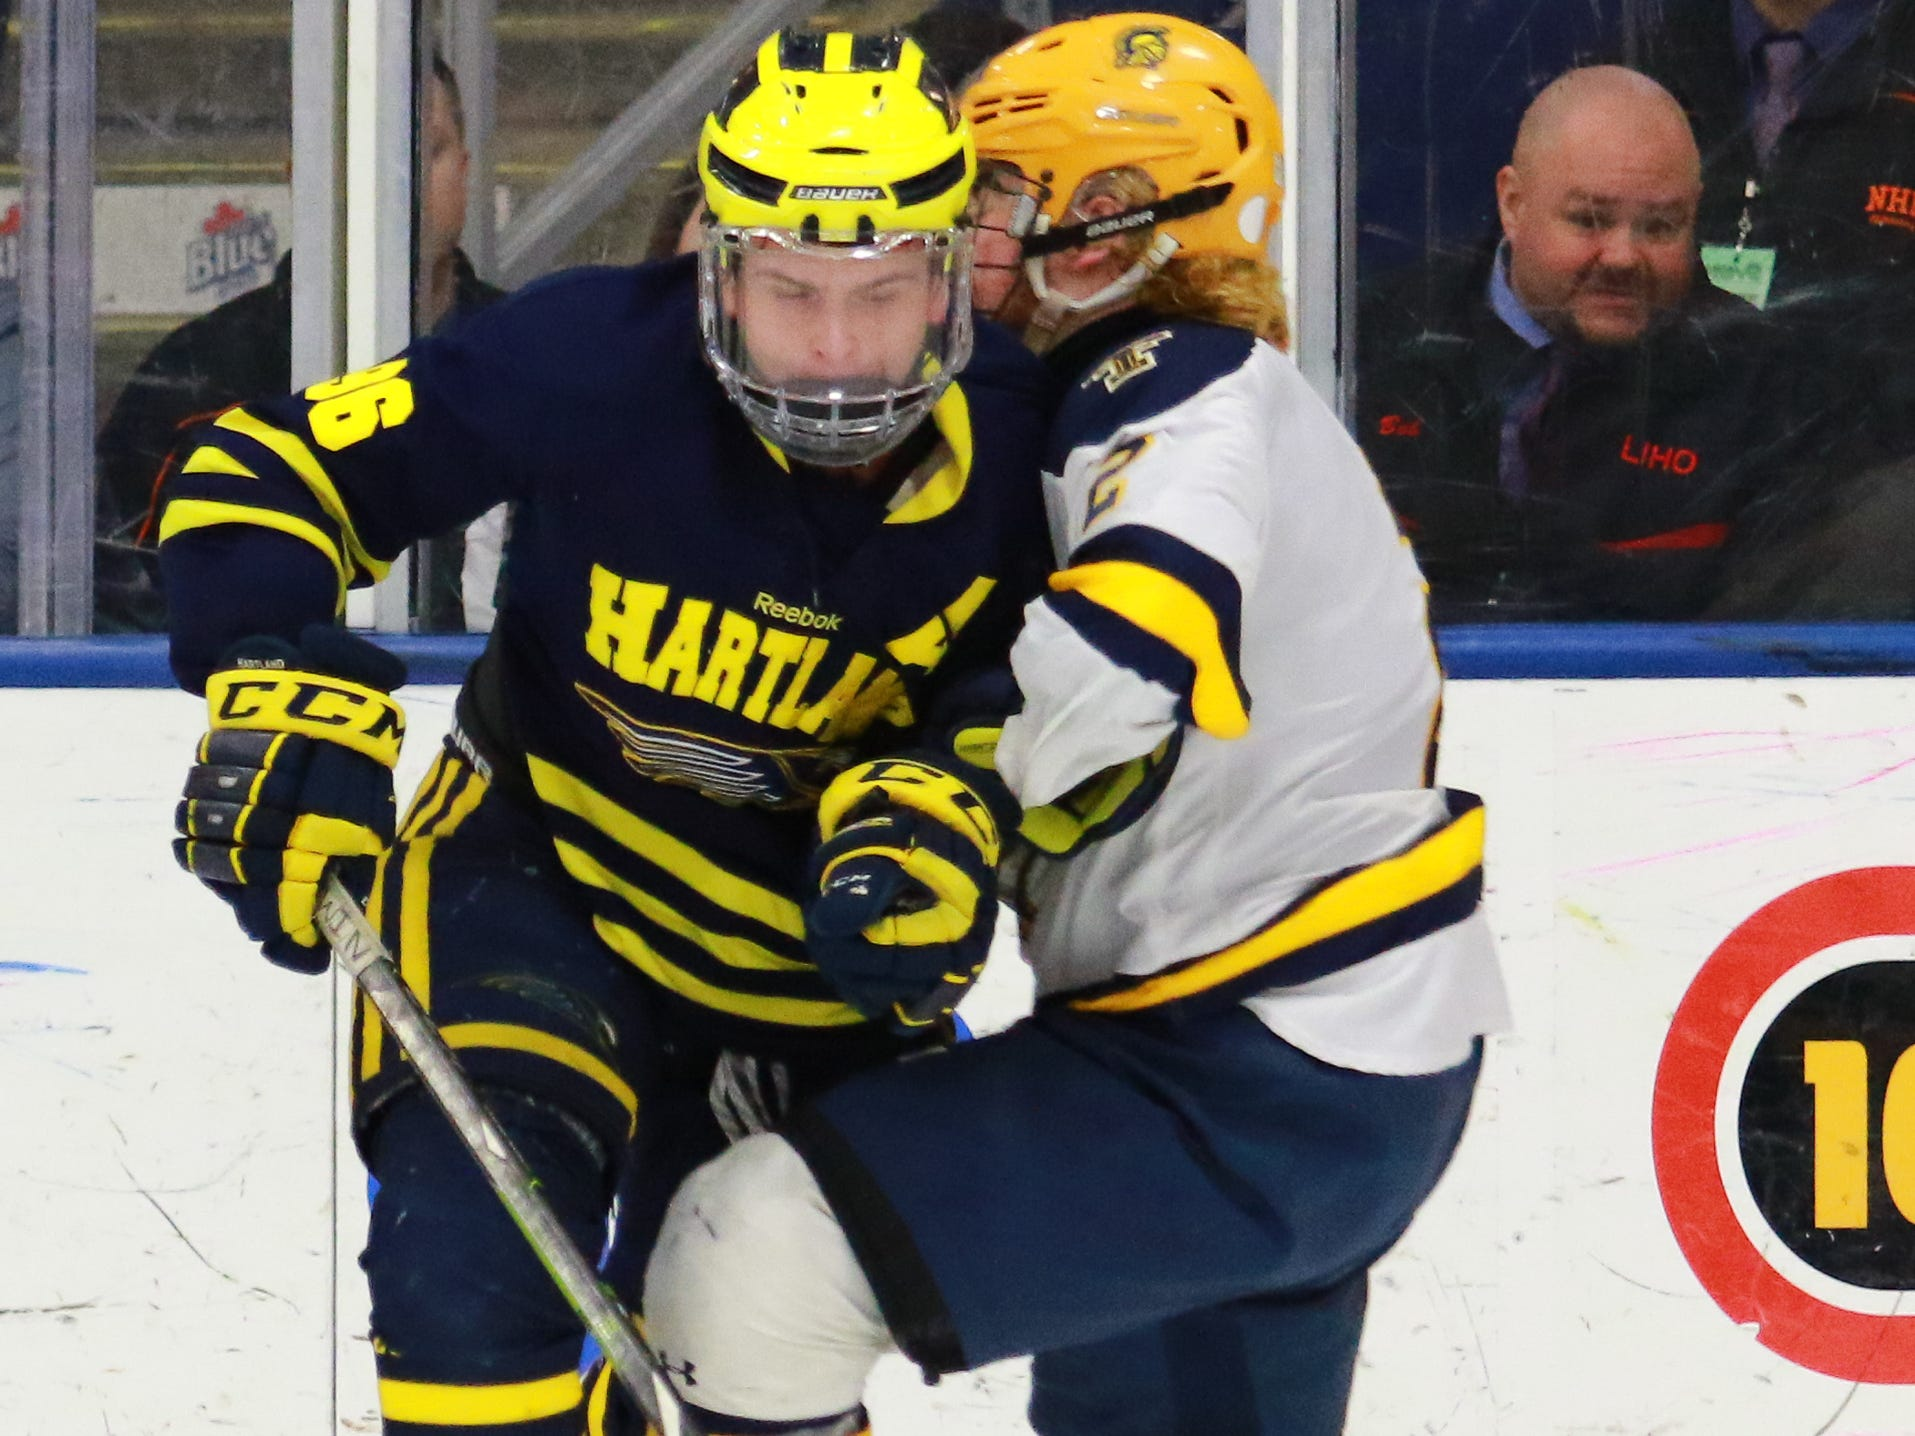 Hartland's Owen Pietila moves the puck while defended by Logan Styles in a 4-0 victory over Trenton in the state Division 2 championship hockey game on Saturday, March 9, 2019 at USA Hockey Arena.